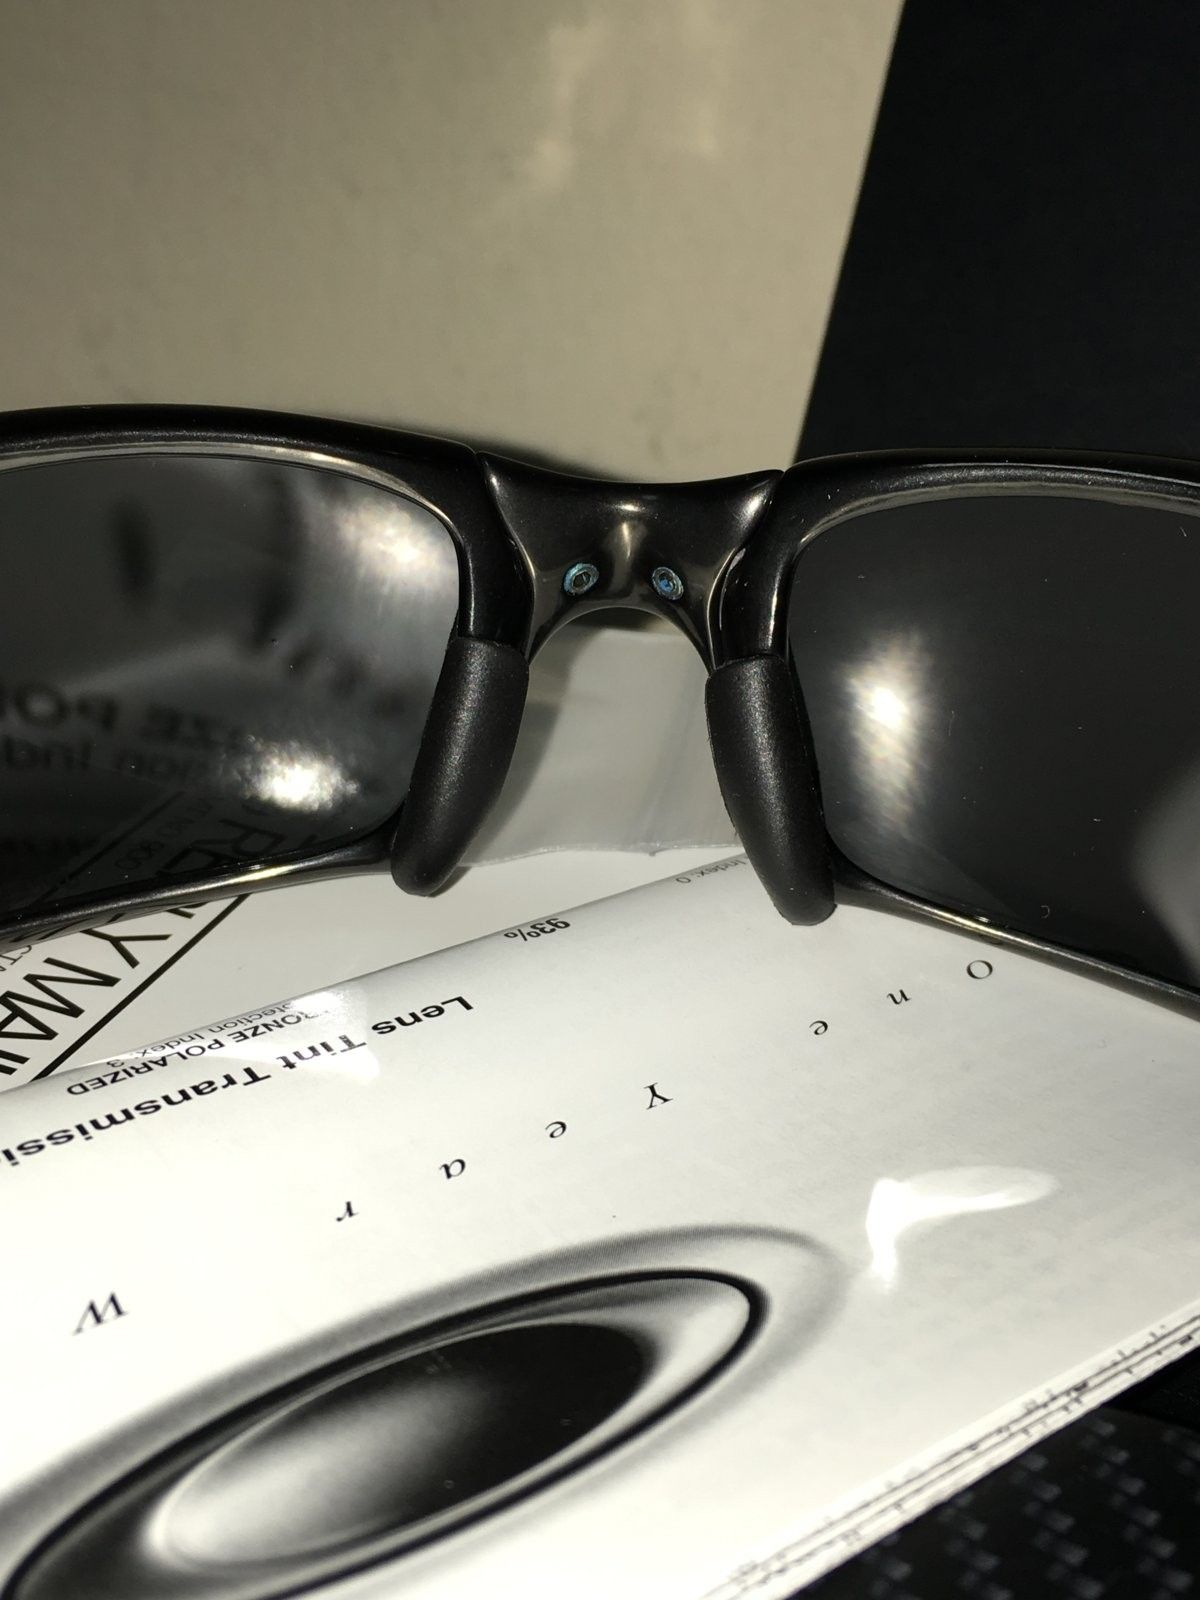 BNIB XS Polished Carbon w/ BIP  dropped USD 530 all in - image (1).jpeg